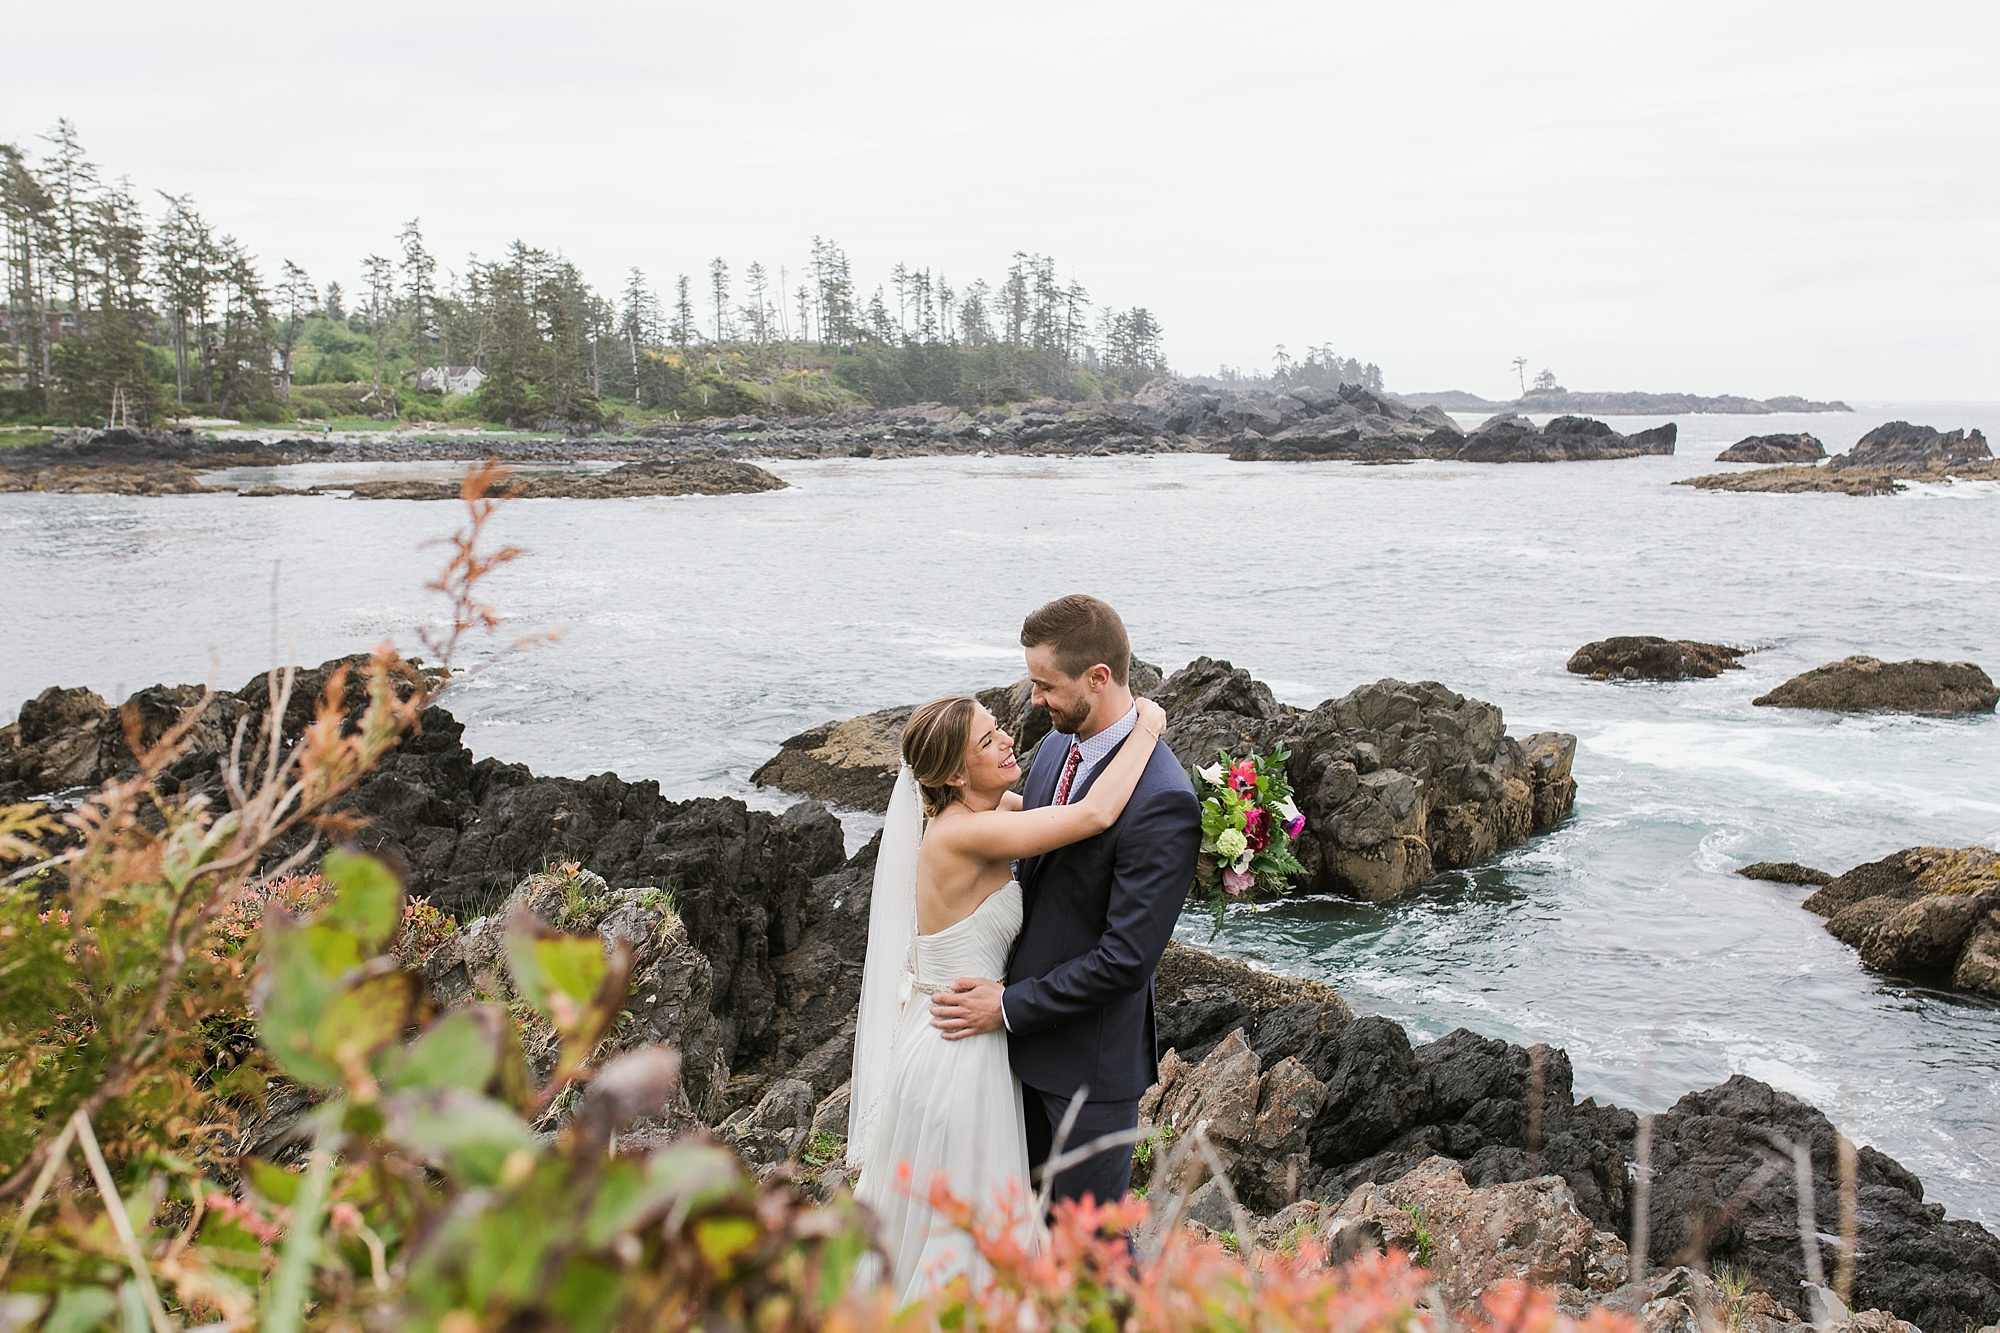 blackrockoceanfrontresort-wedding_0082.jpg